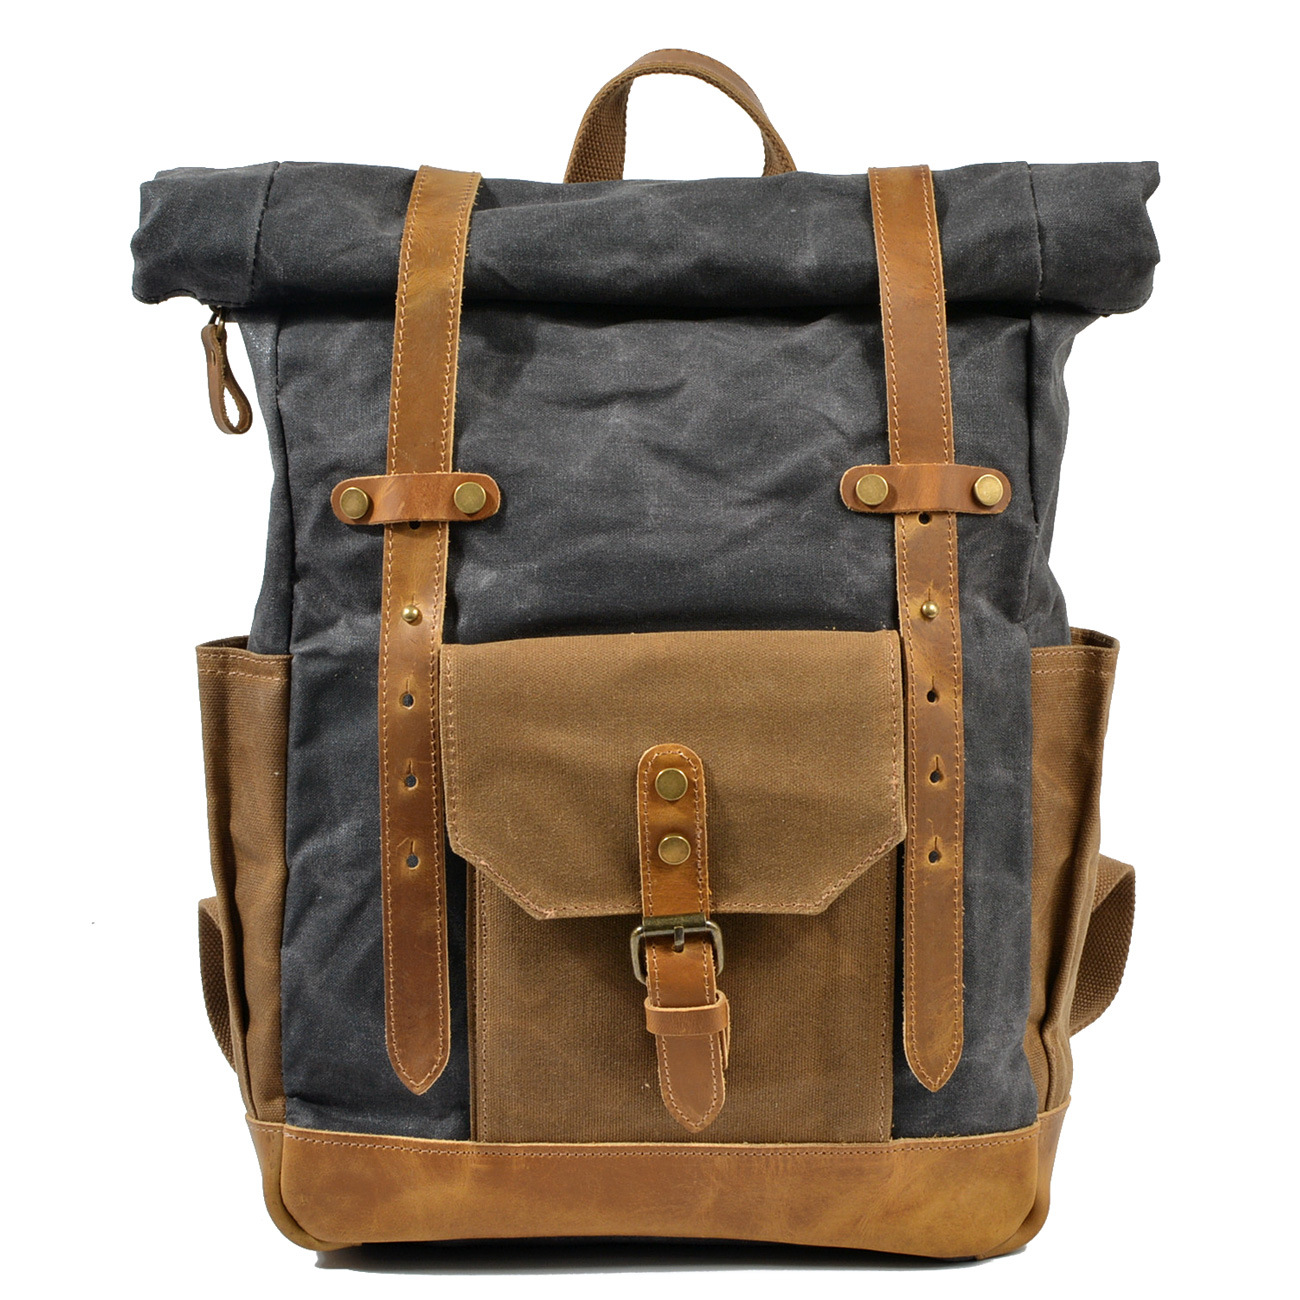 High Quality Canvas + Cow Leather Vintage Women Men Backpack Waterproof Travel College Bag Large Laptop Daypack Foldable BookbagHigh Quality Canvas + Cow Leather Vintage Women Men Backpack Waterproof Travel College Bag Large Laptop Daypack Foldable Bookbag